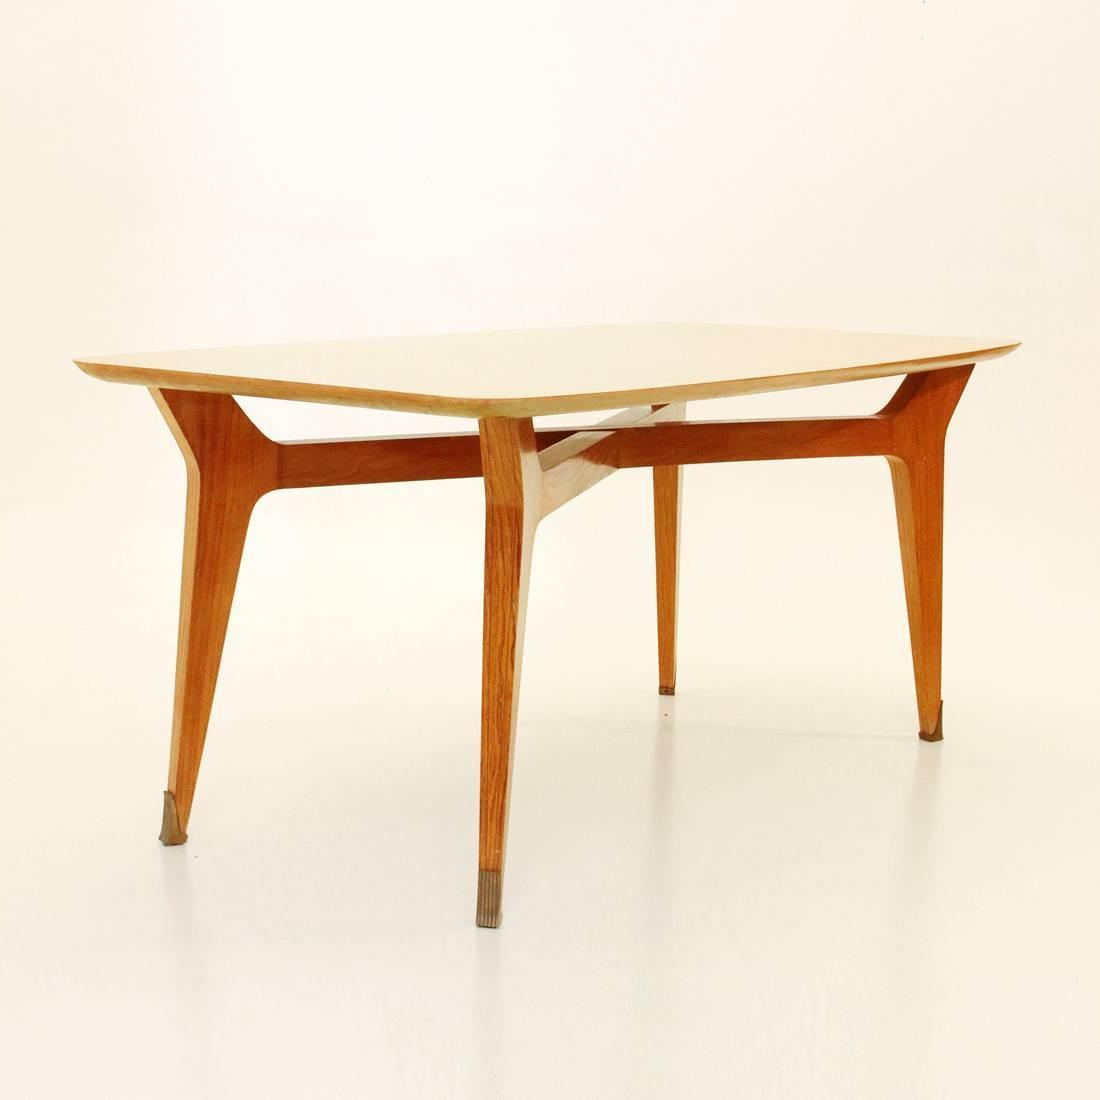 Italian mid century beech dining table 1950s for sale at for Dining room tables 36 x 72